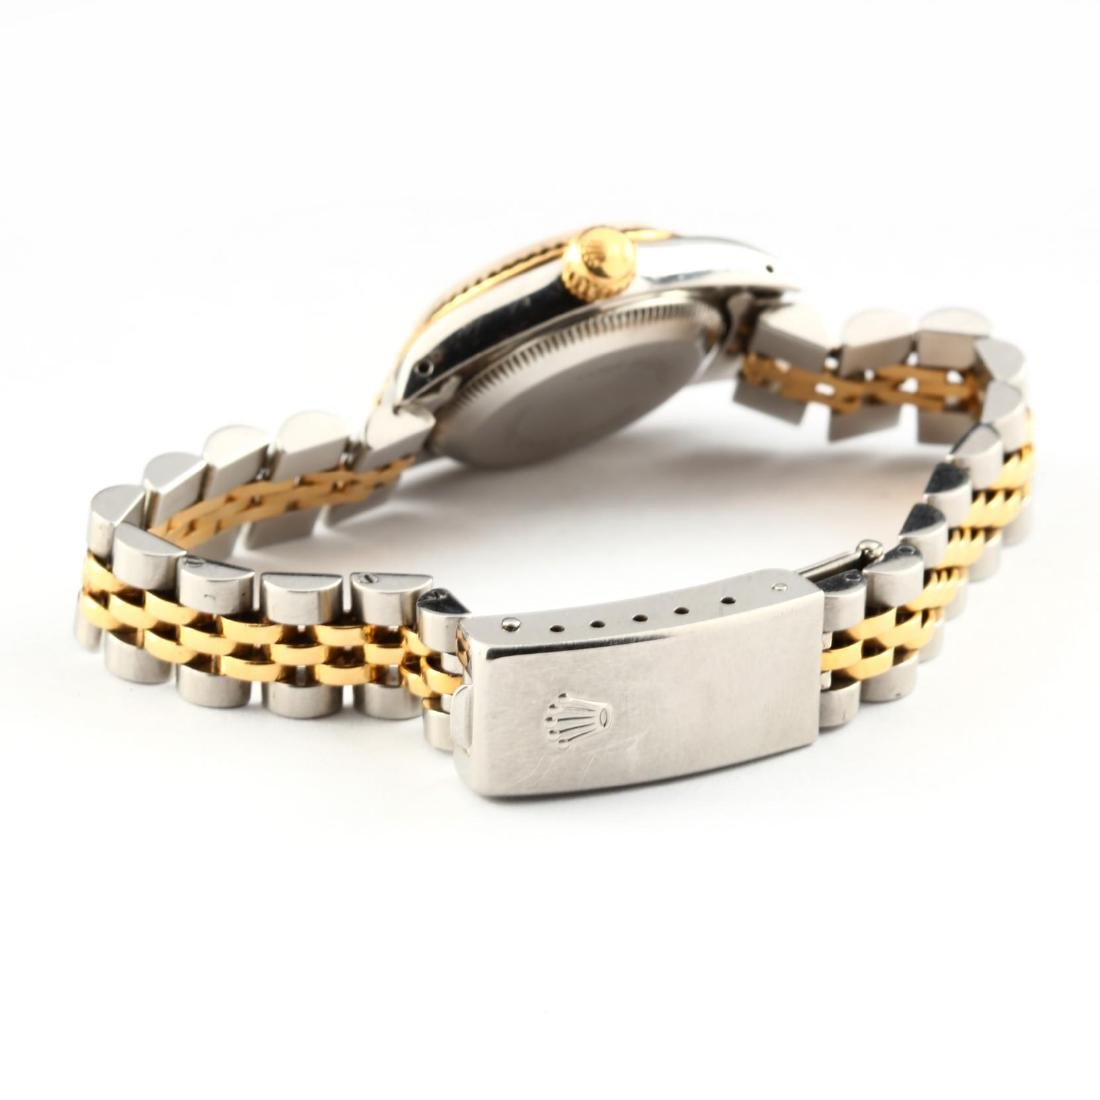 Lady's Stainless Steel and Gold Oyster Perpetual Watch, - 4